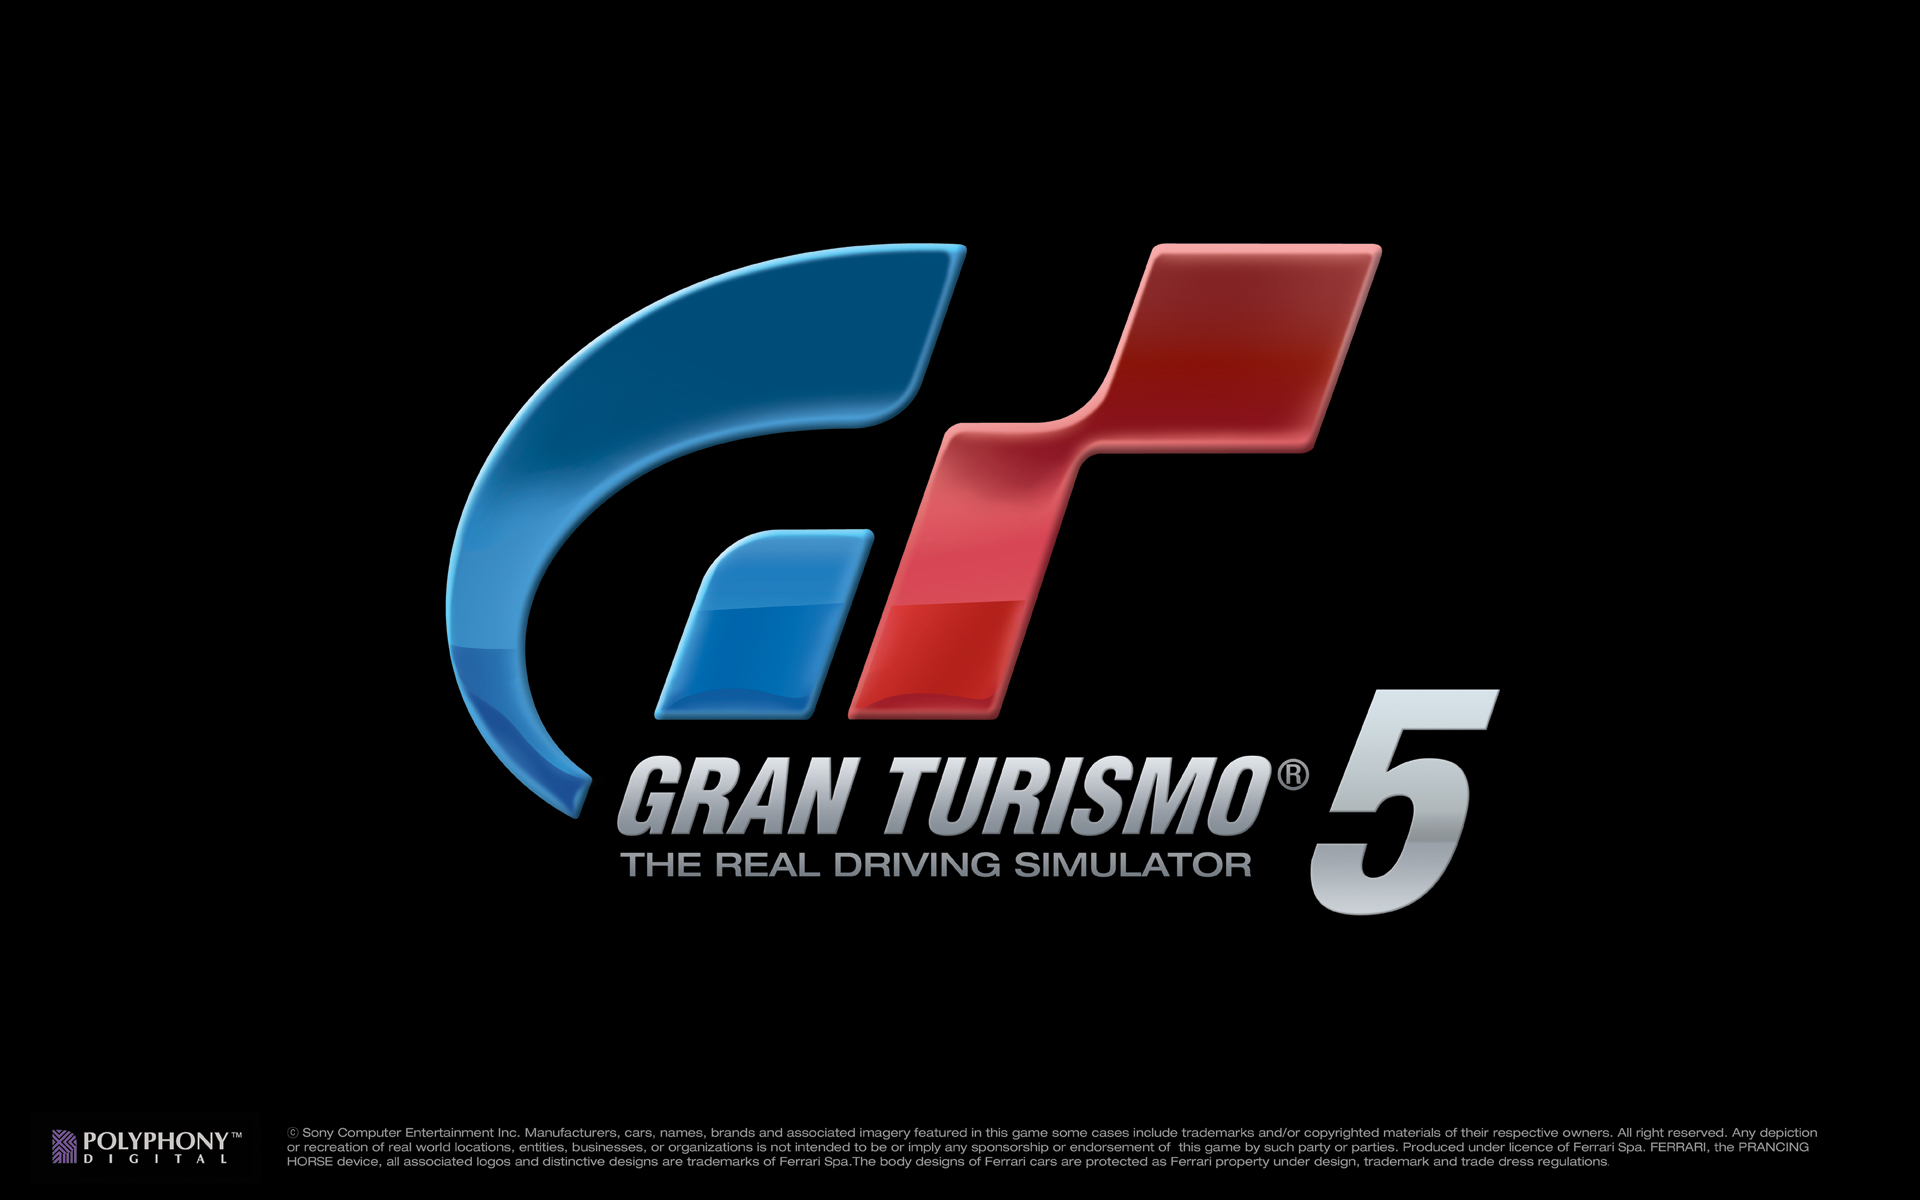 new 39 overtaking challenge 39 seasonal event goes live in gran turismo 5 team vvv. Black Bedroom Furniture Sets. Home Design Ideas